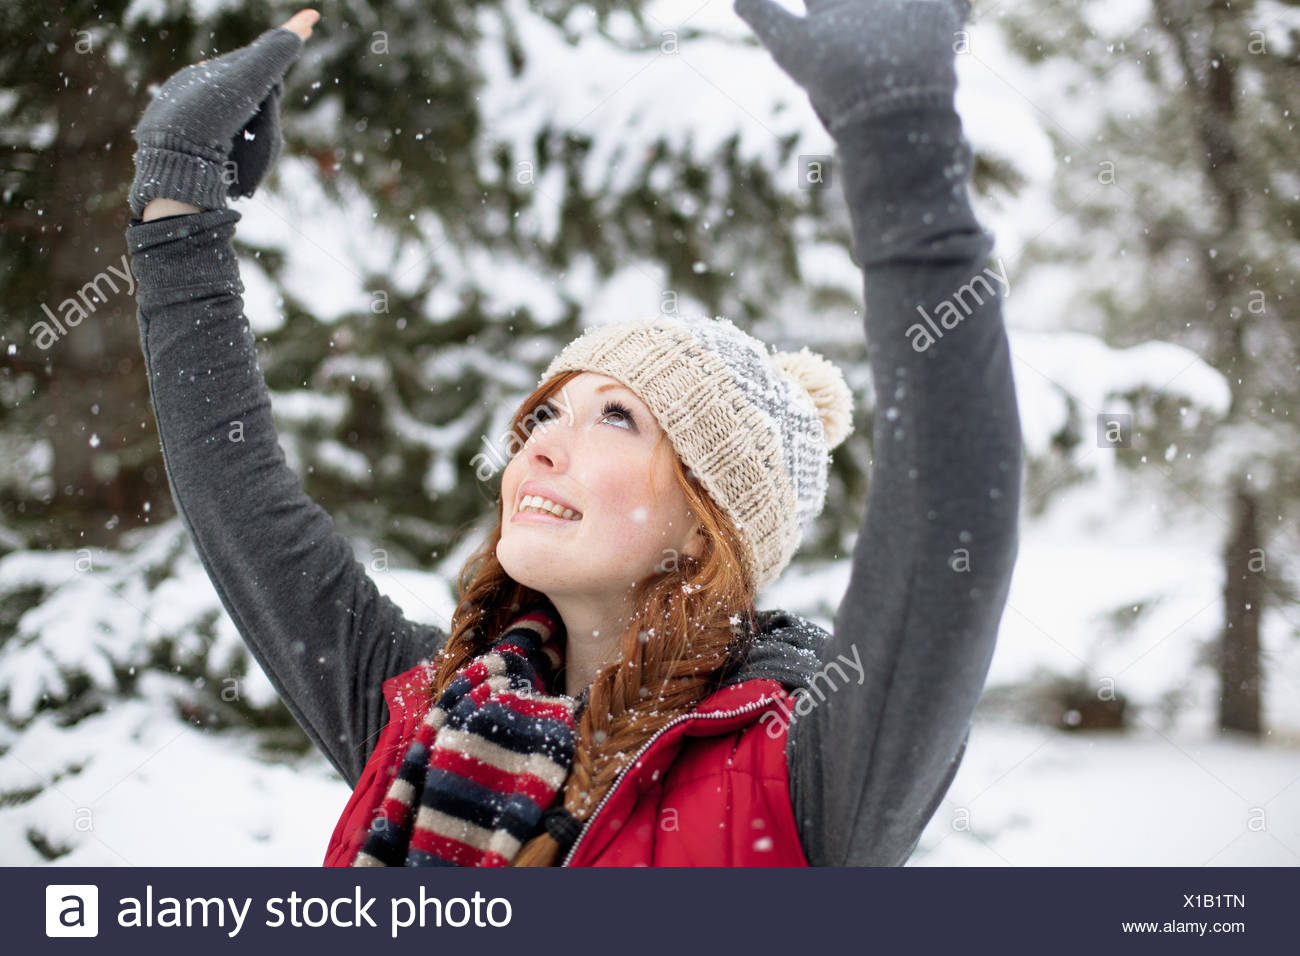 redheaded woman with arms outstretched - Stock Image